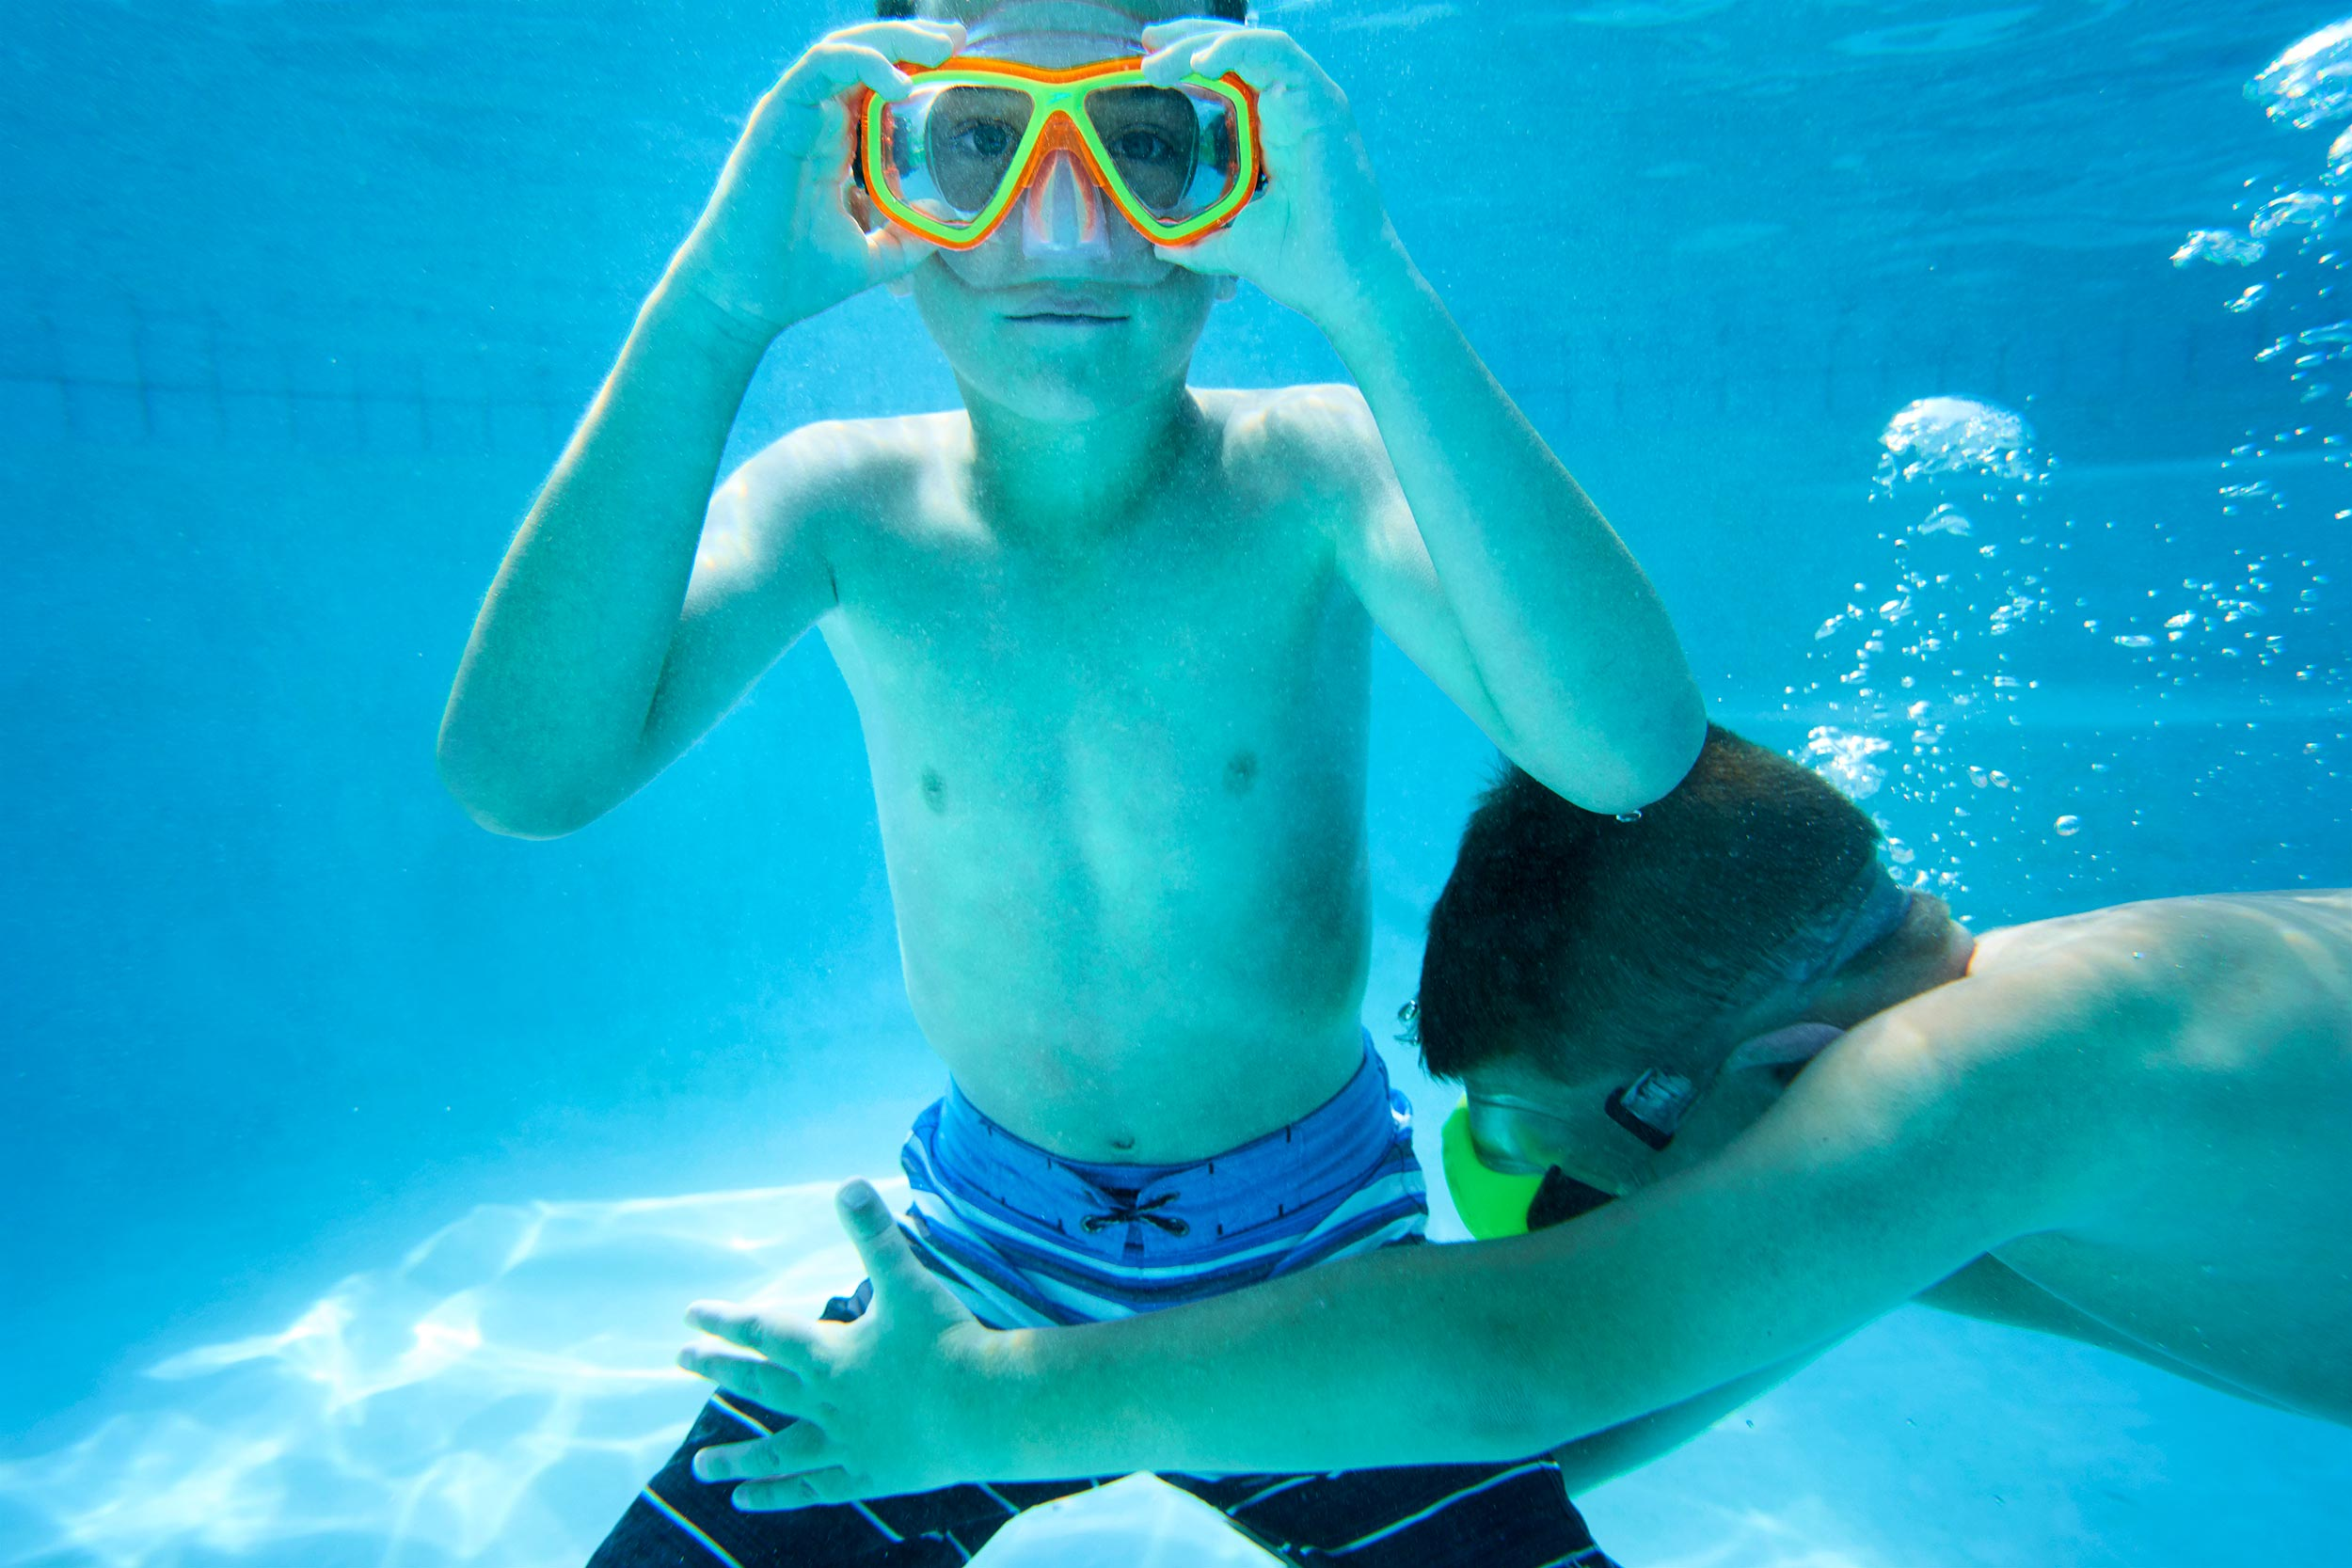 04_BoysInPool_2040-underwater-googles